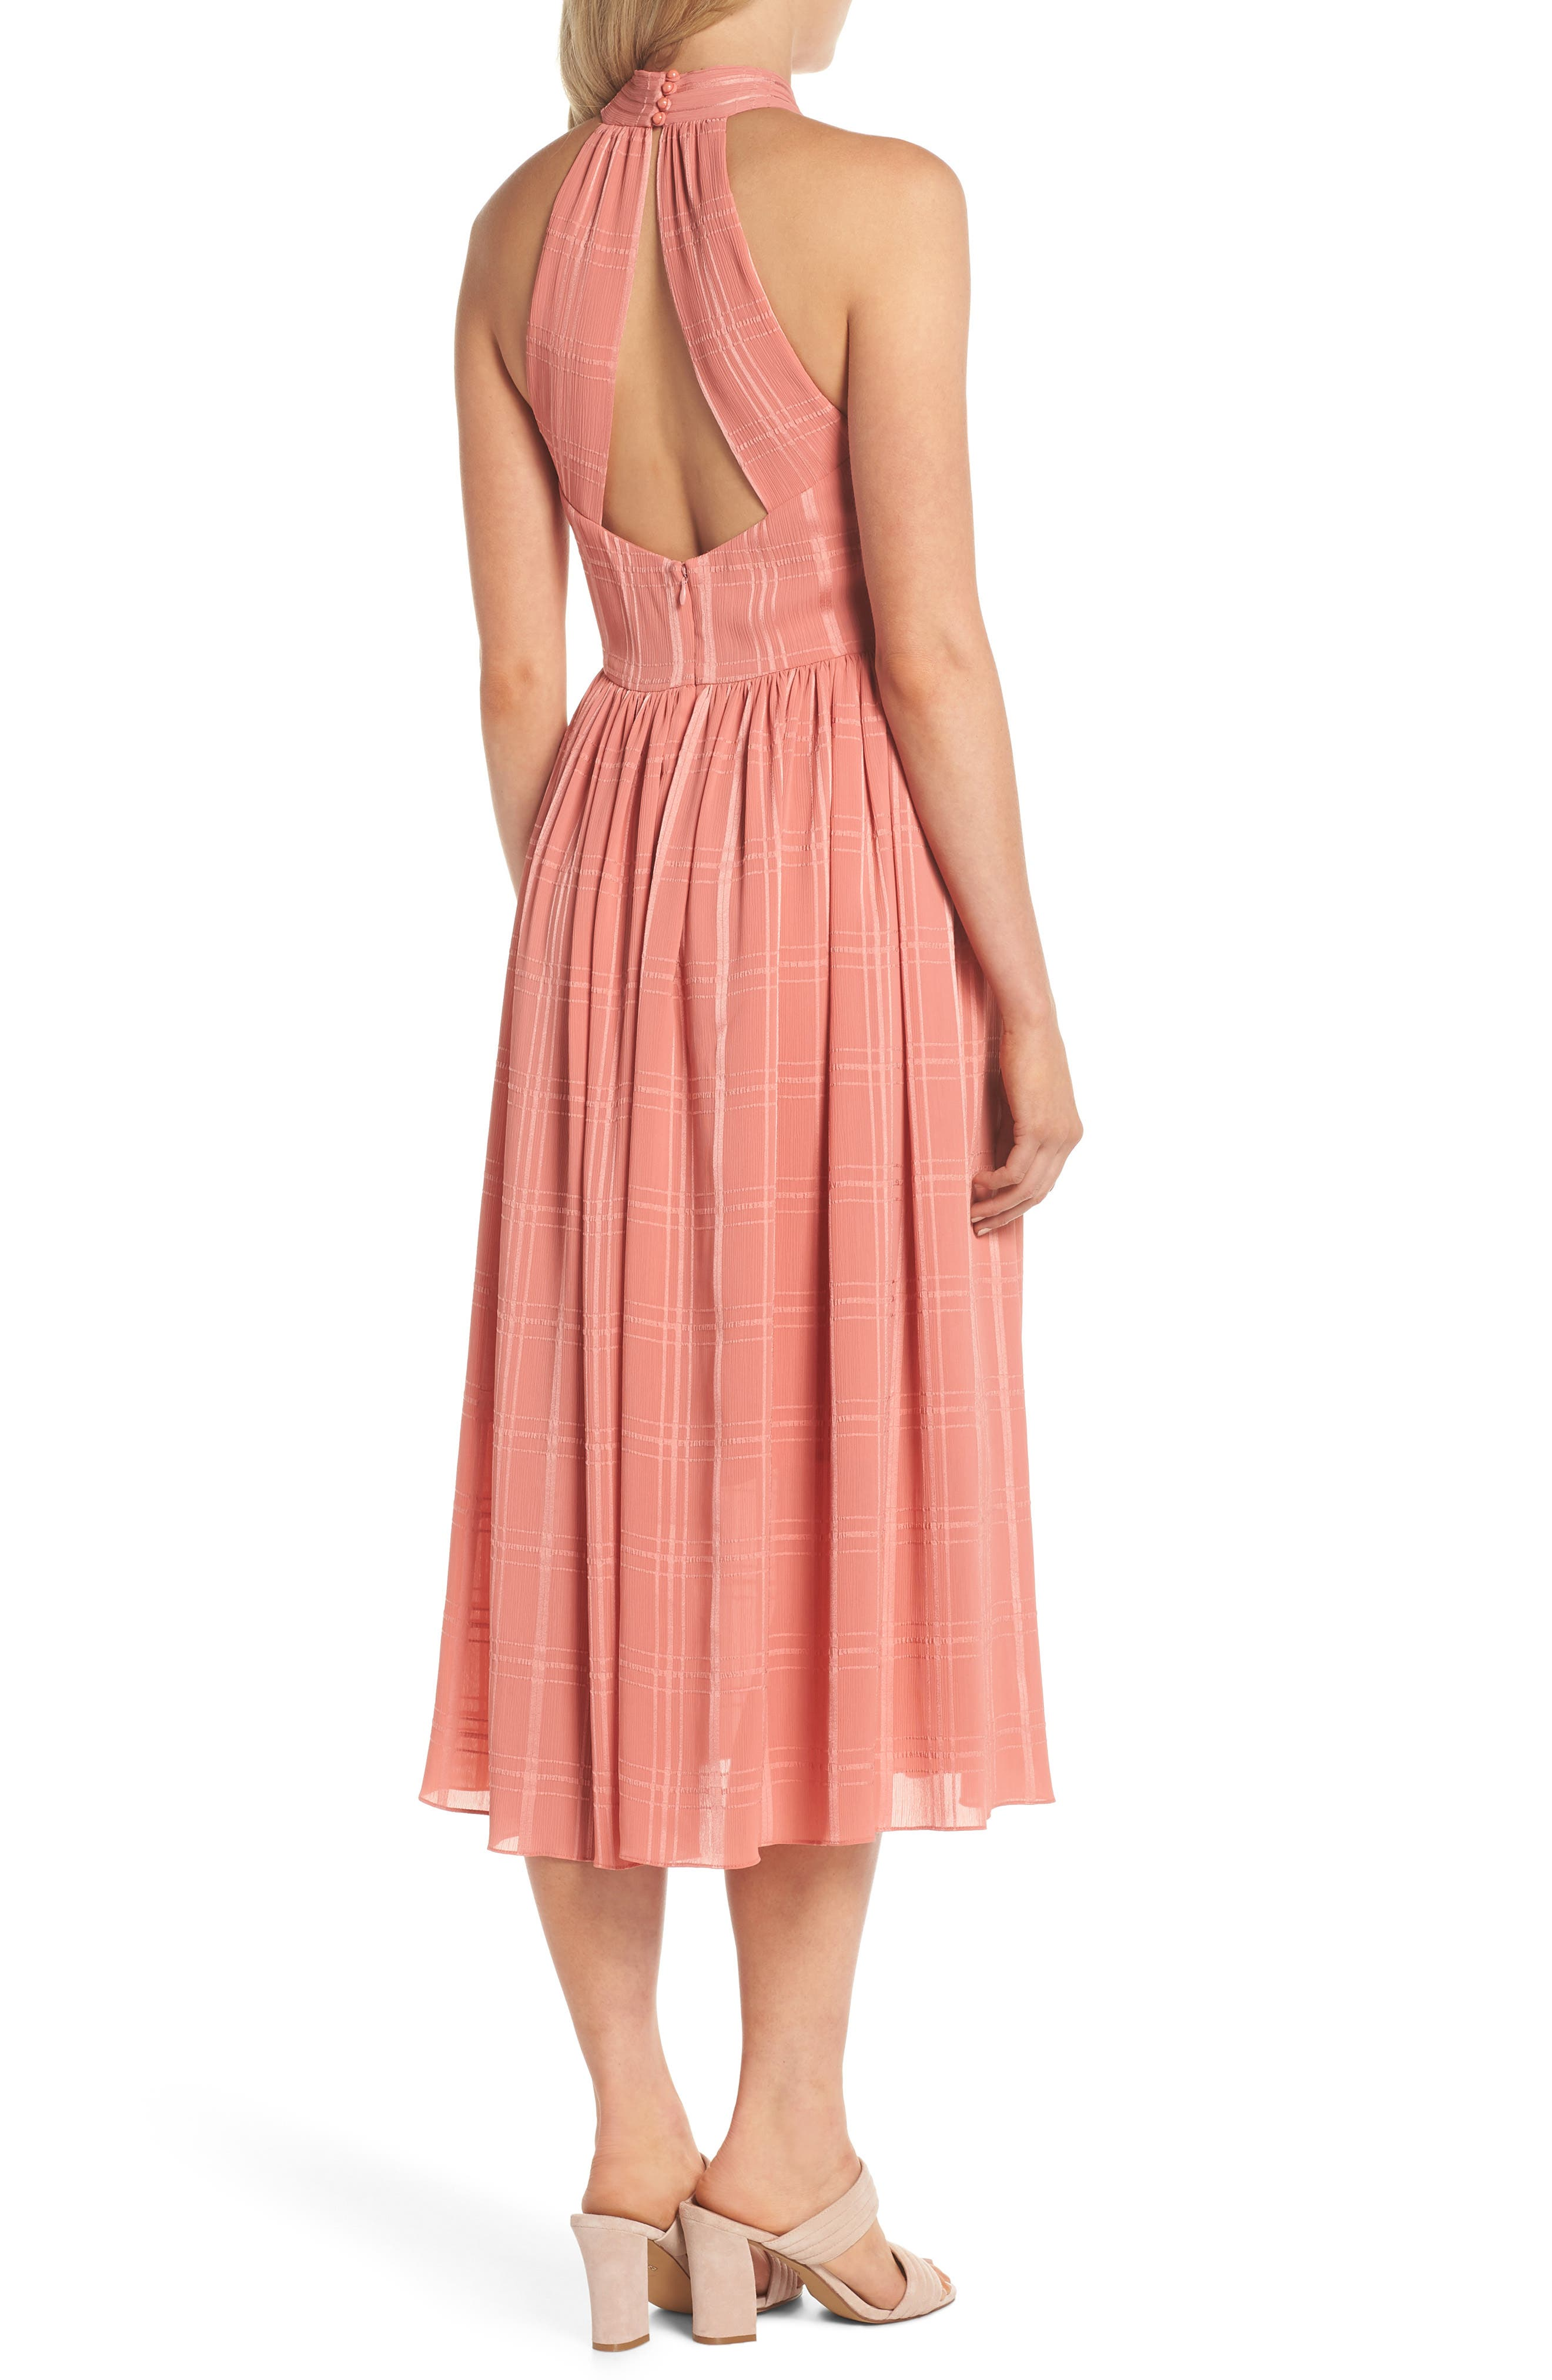 Mia Twist Chiffon Midi Dress,                             Alternate thumbnail 2, color,                             681